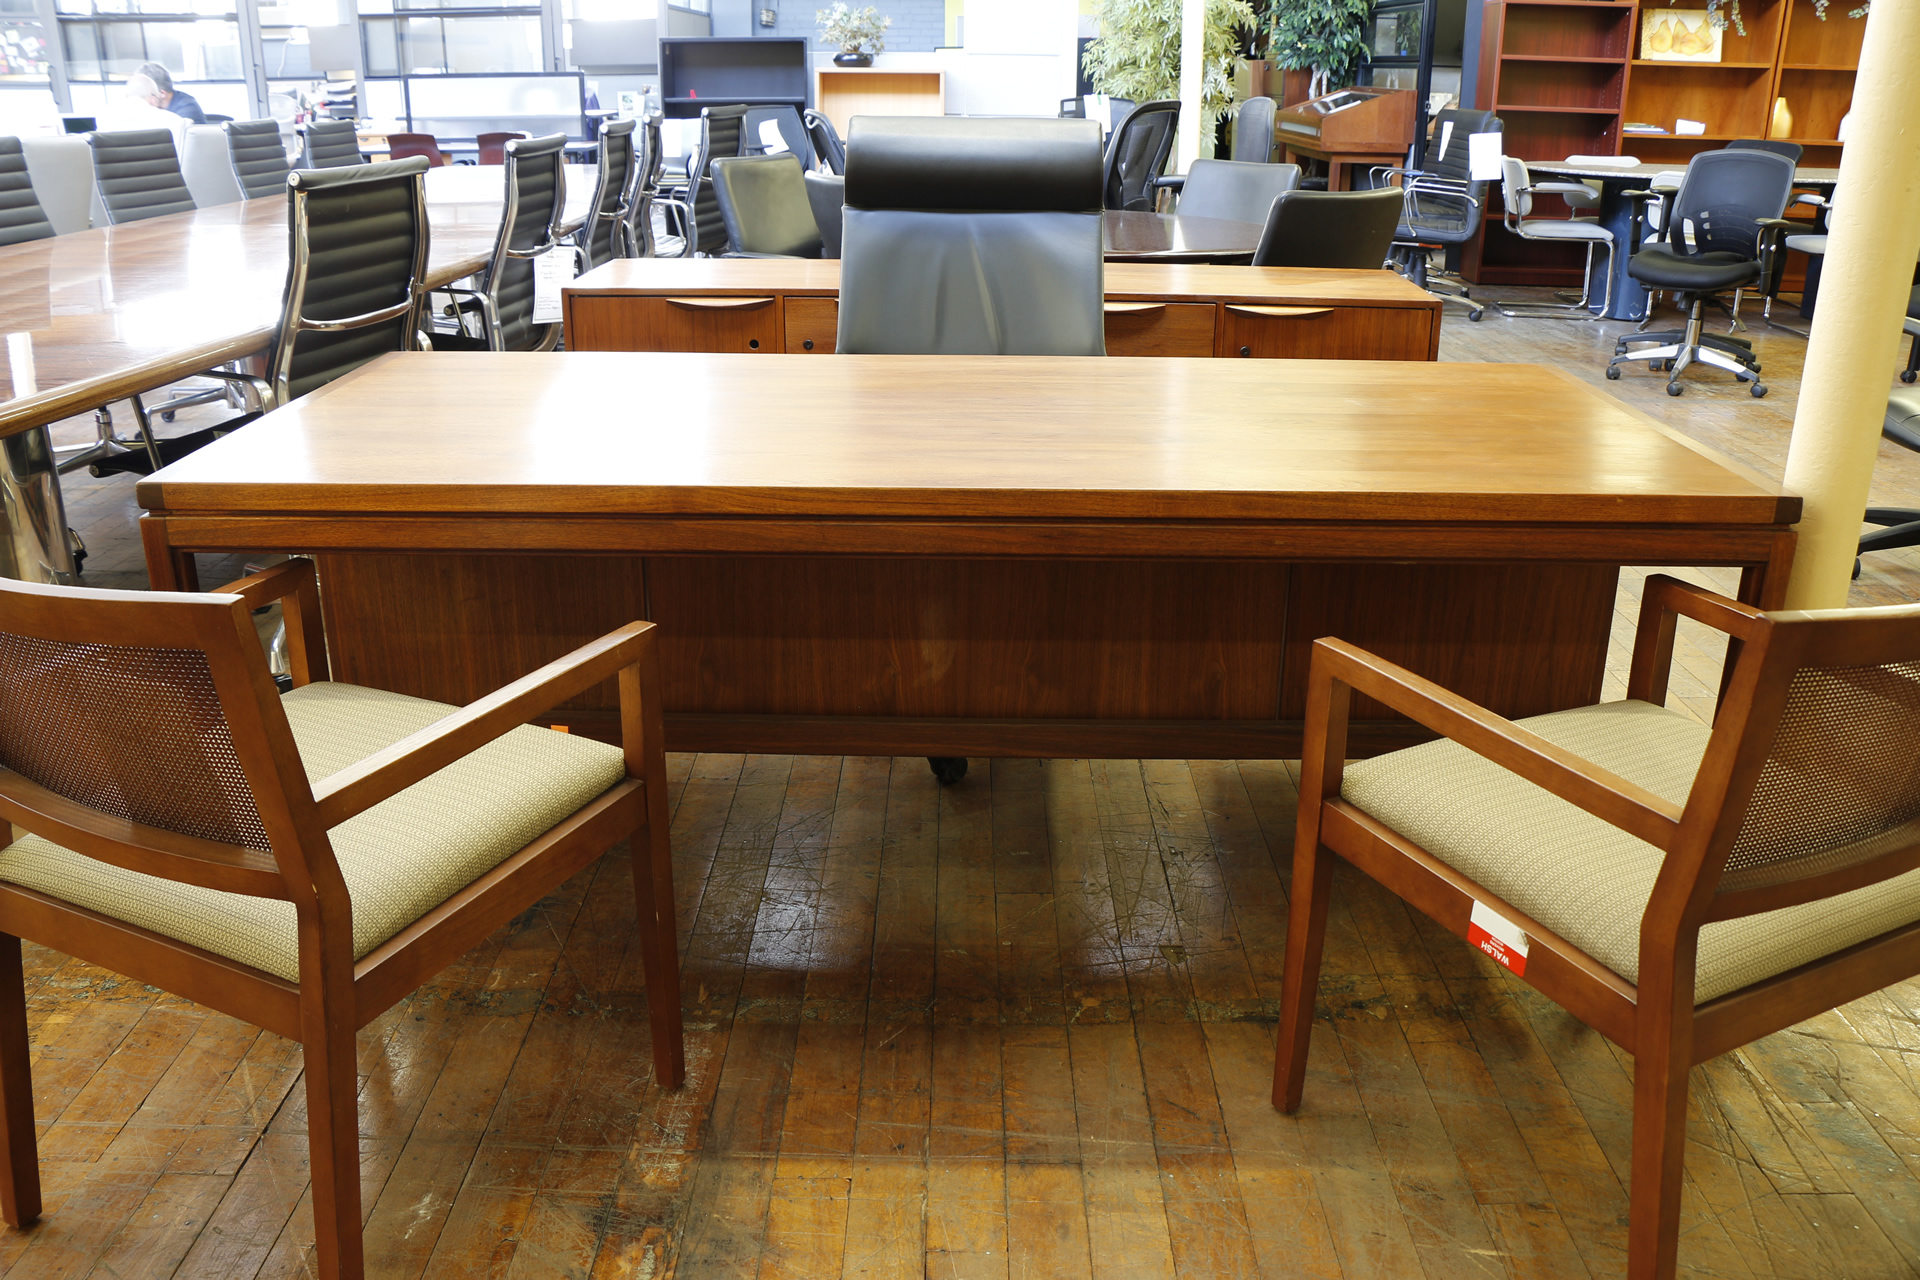 peartreeofficefurniture_peartreeofficefurniture_mg_4377.jpg